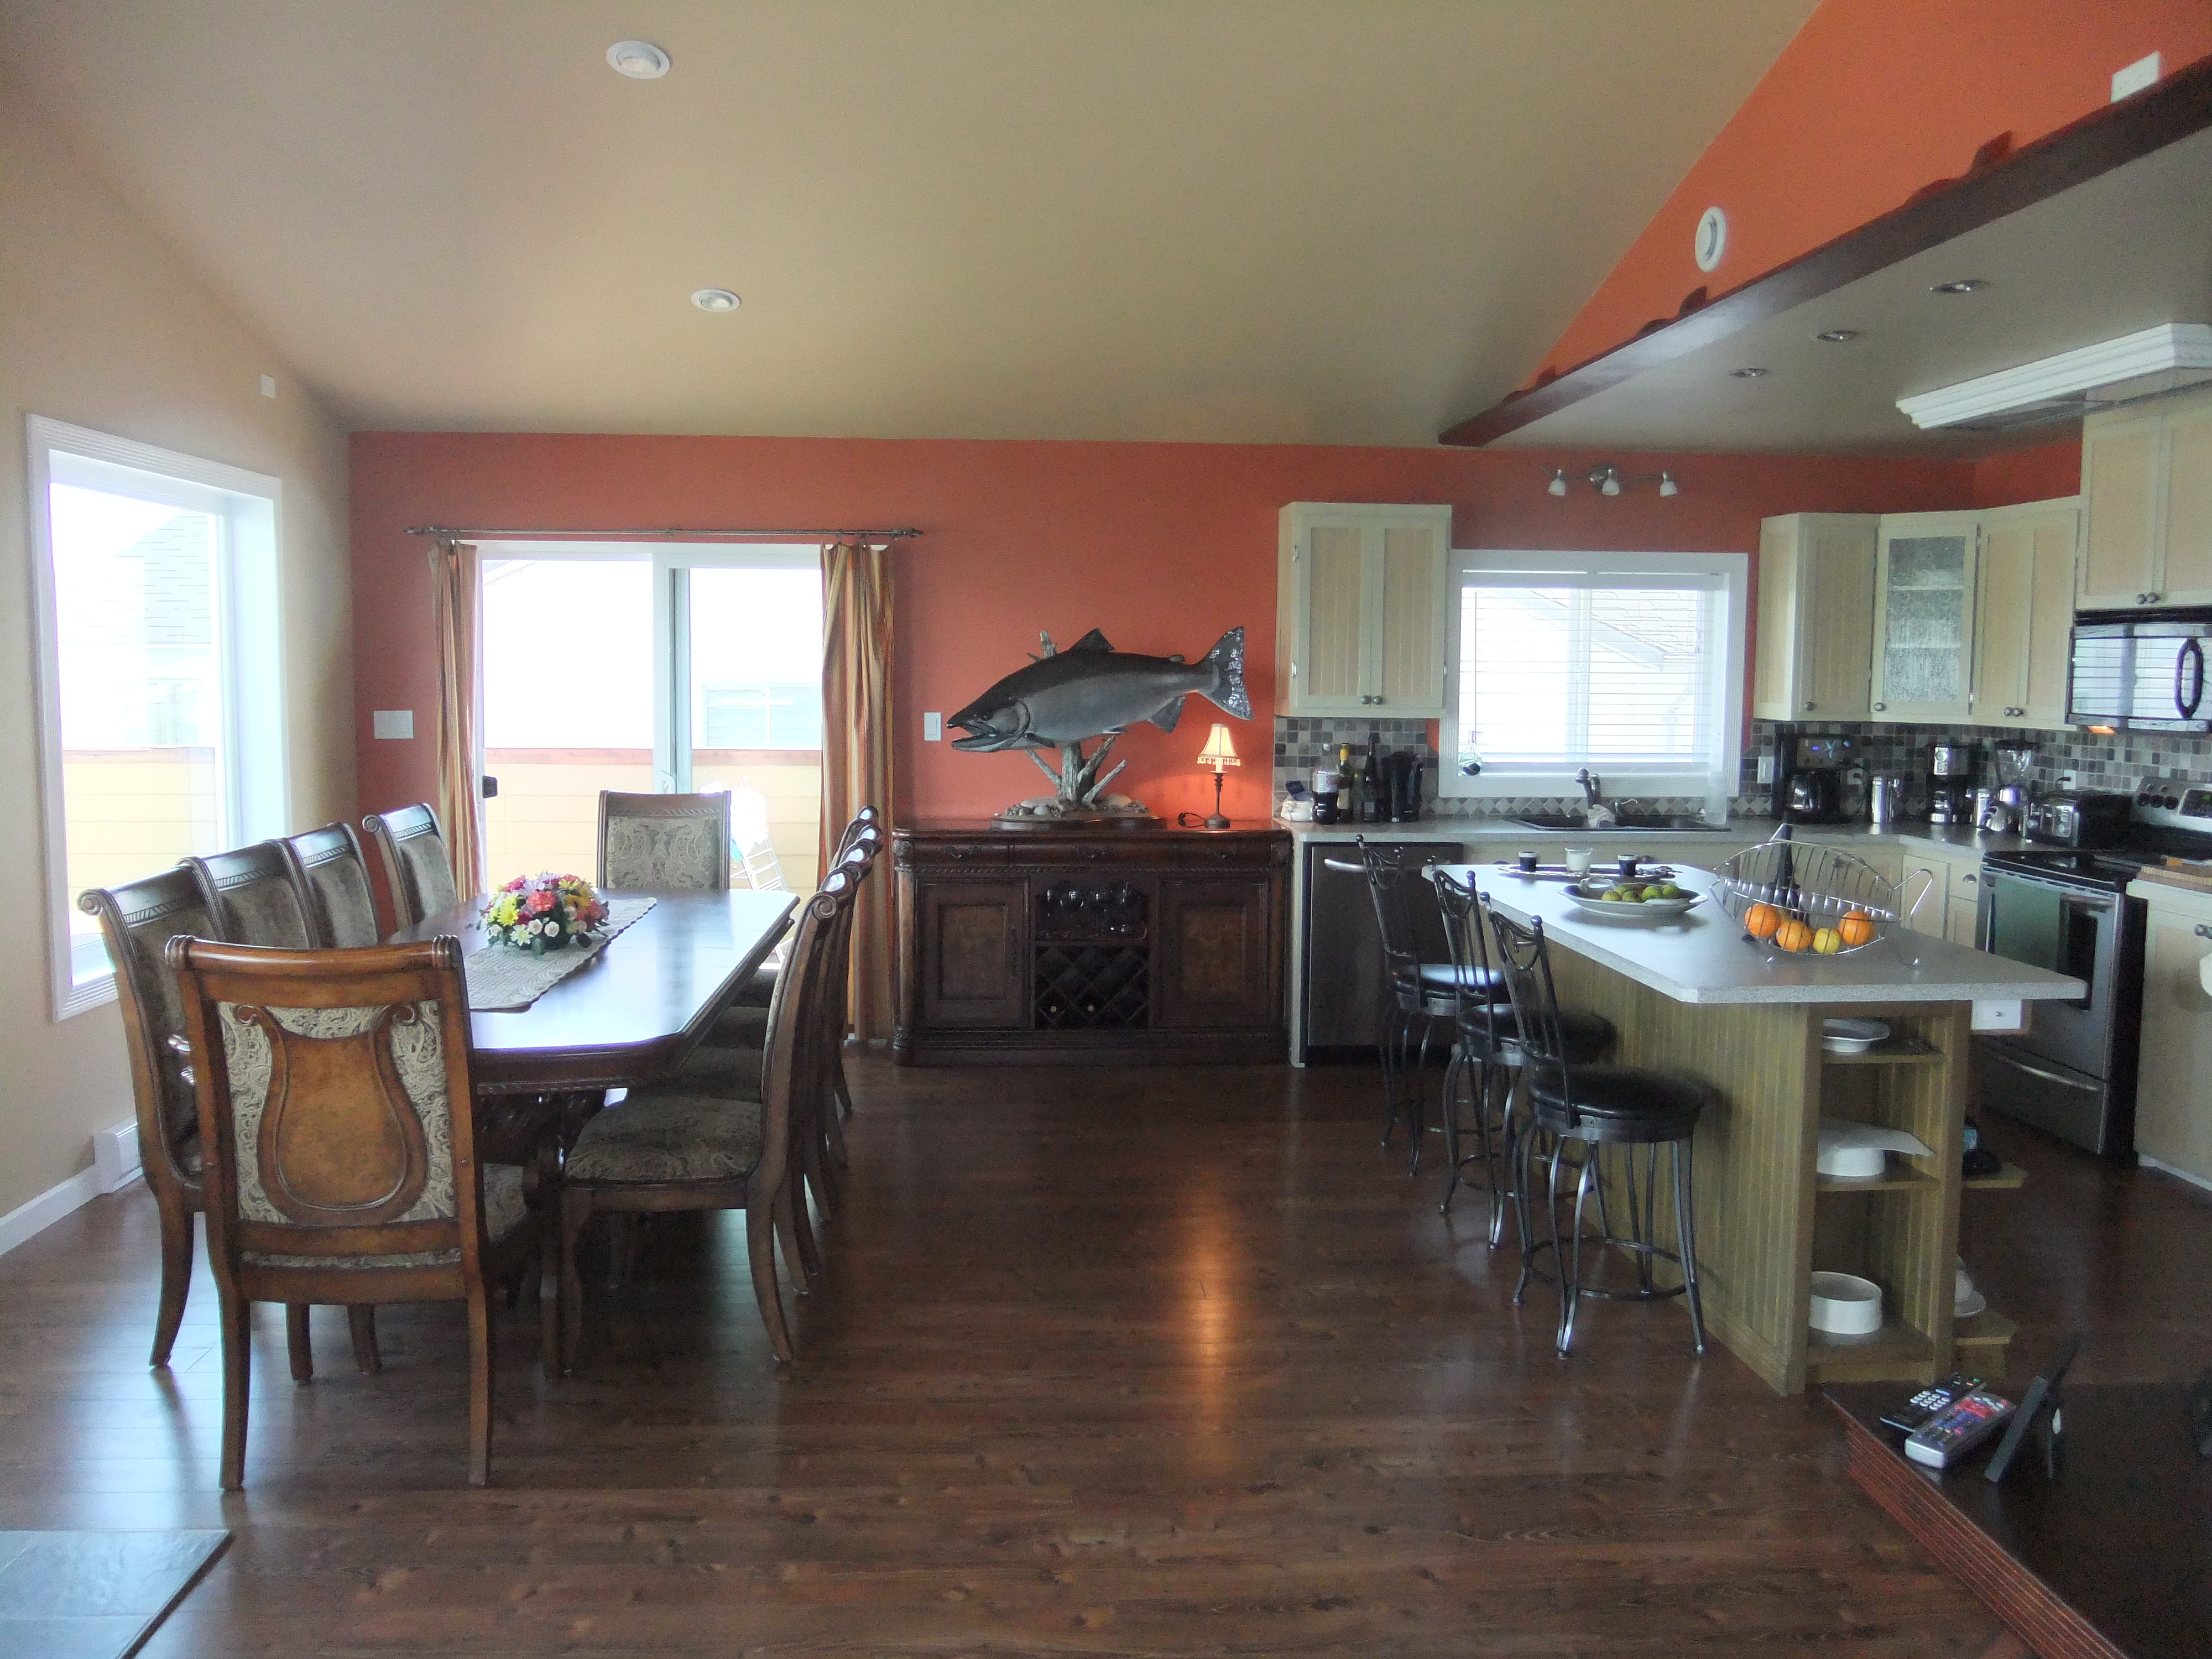 All-inclusive Vancouver Island fishing charters and whale-wildlife viewing includes meals in this dining room